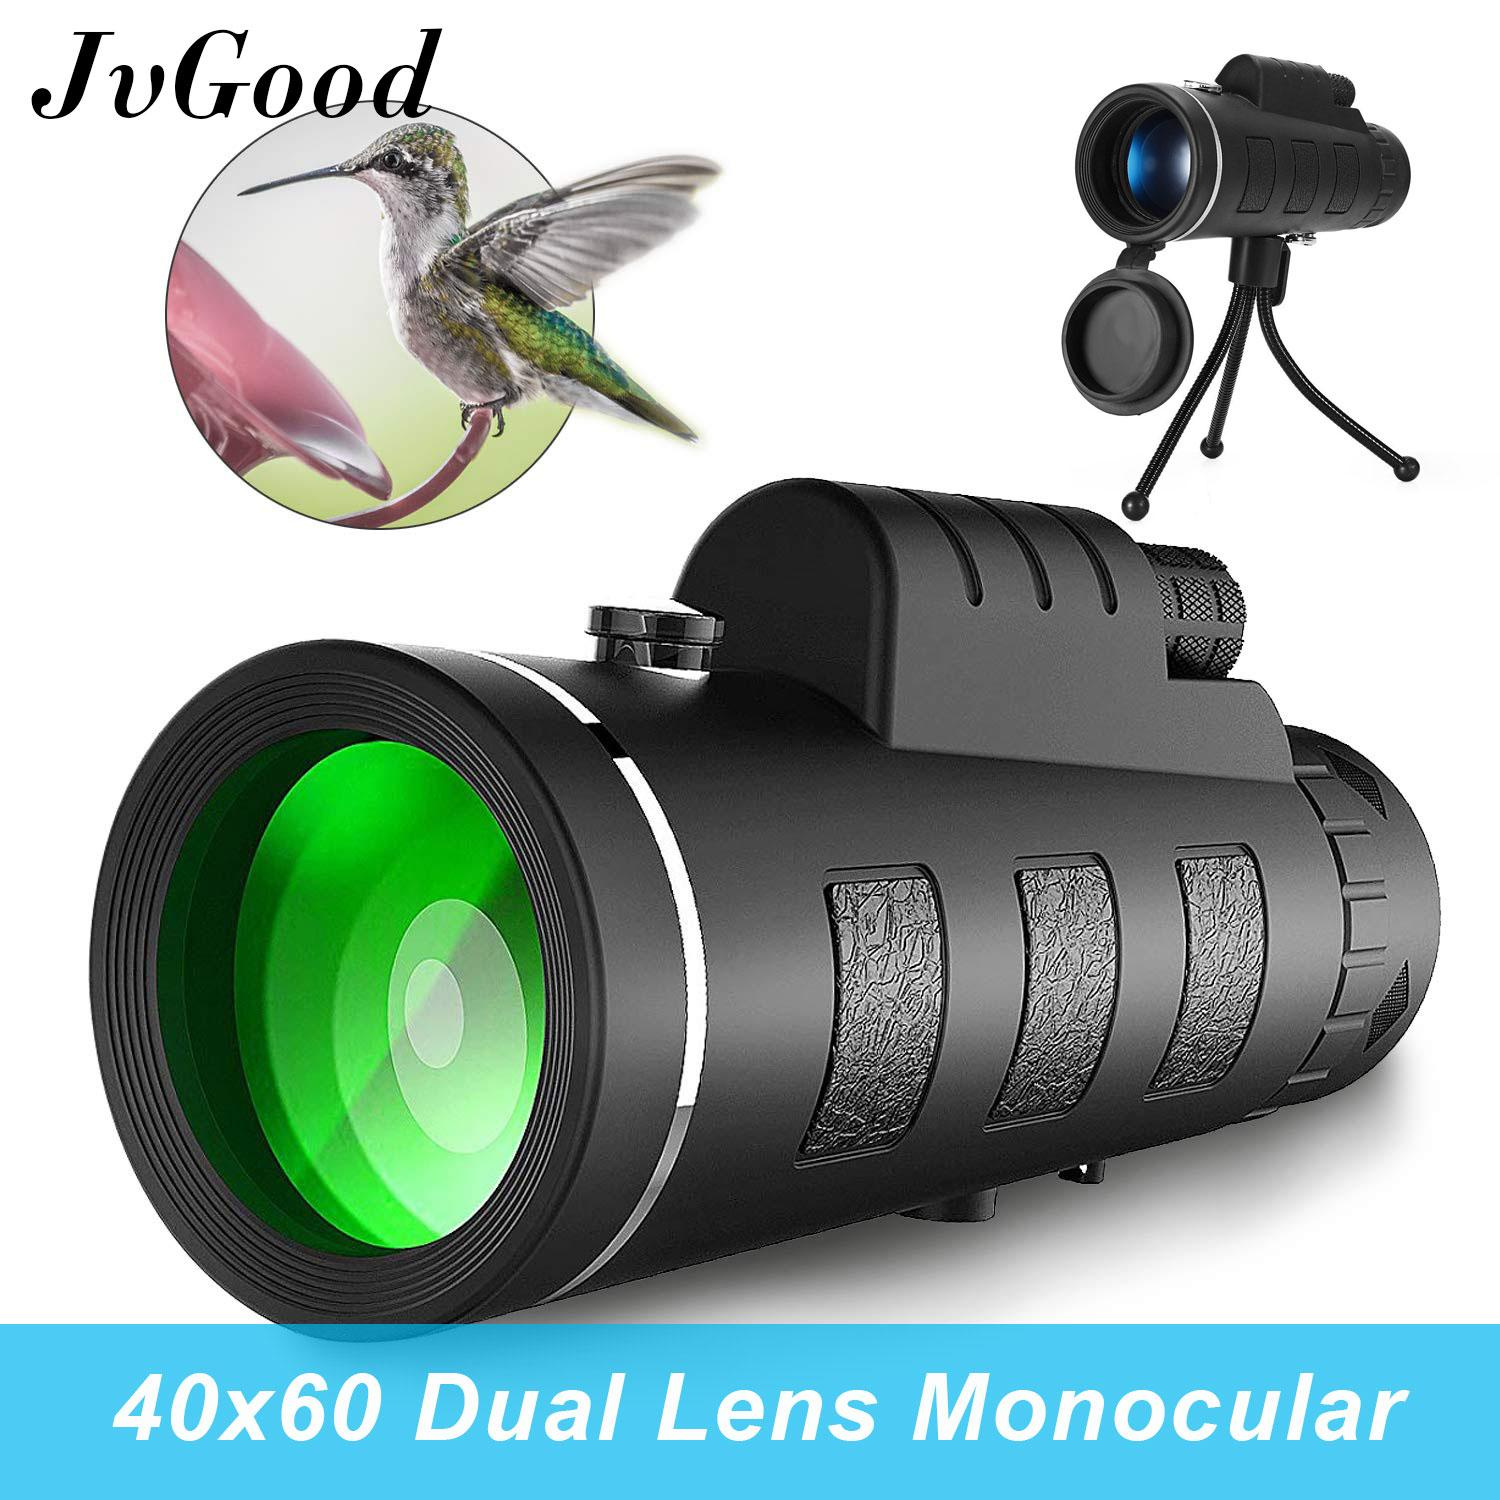 Jvgood Mini Monocular Telescope Super Zoom 40 X 60 Dual Focus Night Vision Hd Monocular Prism Scope With Compass, Phone Clip Tripod, Phone Holder For Stargazing, Camping, Bird Watching, Hiking And Sports By Jvgood.